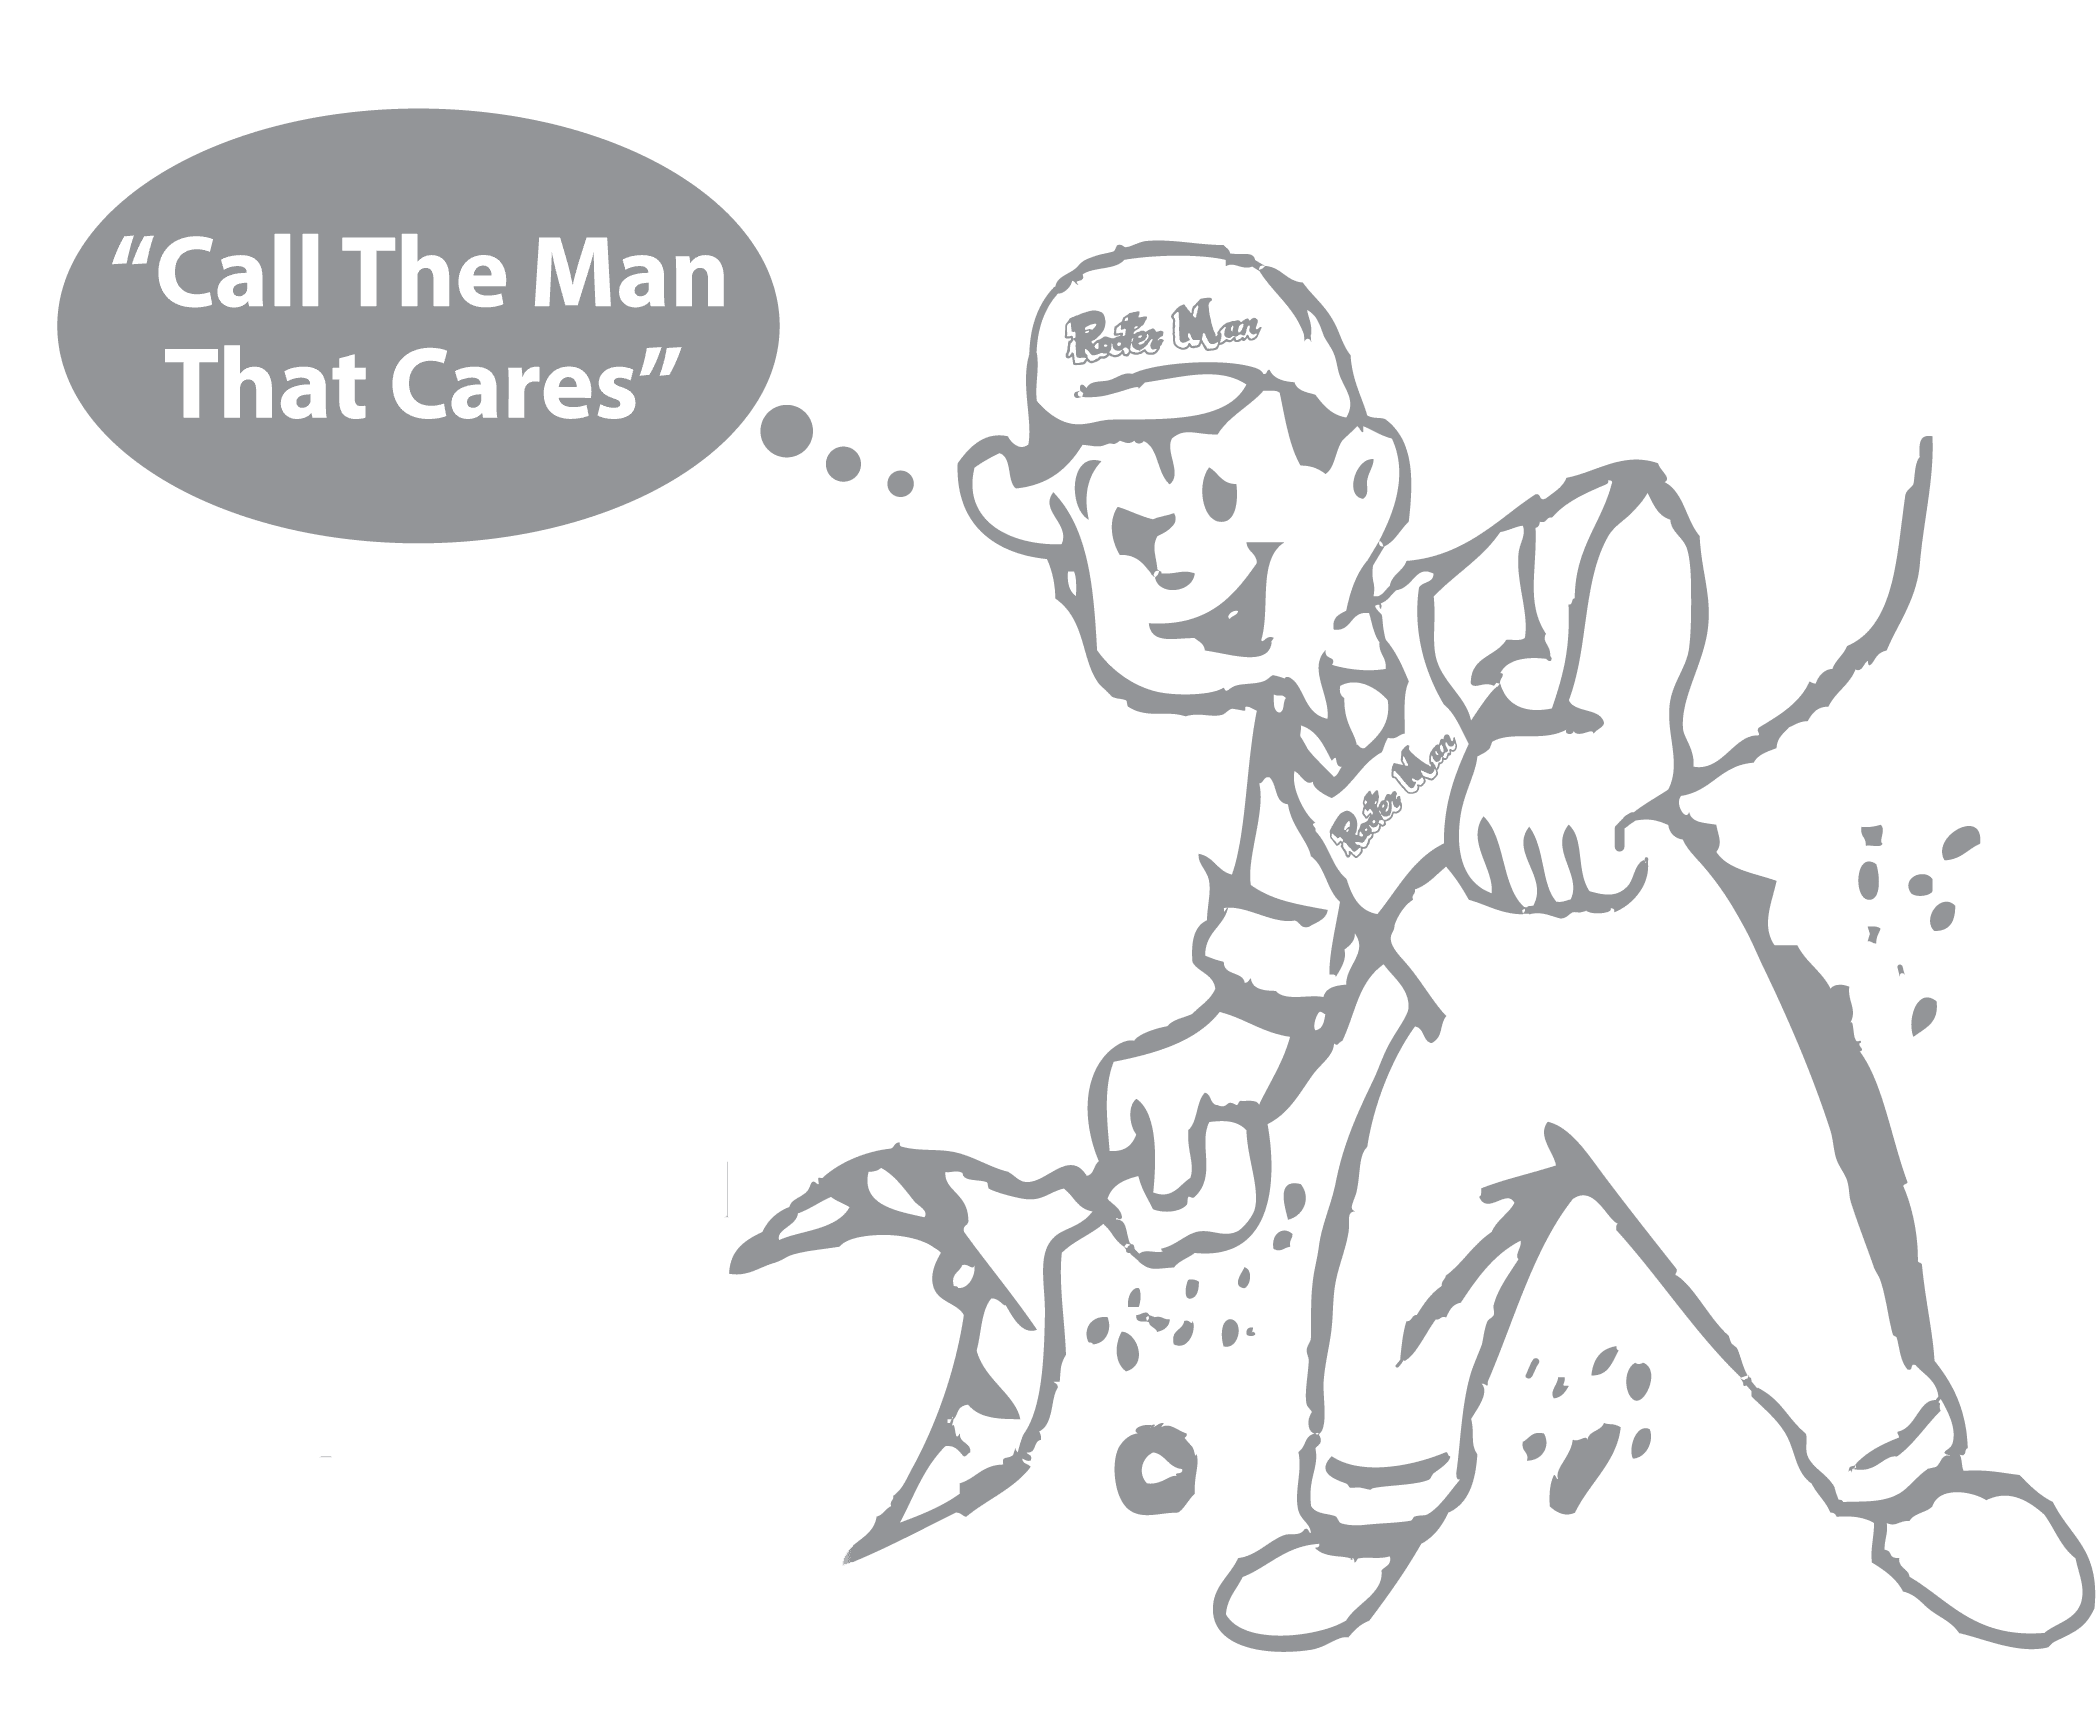 Sewer drawing game. Plumbing and services toledo